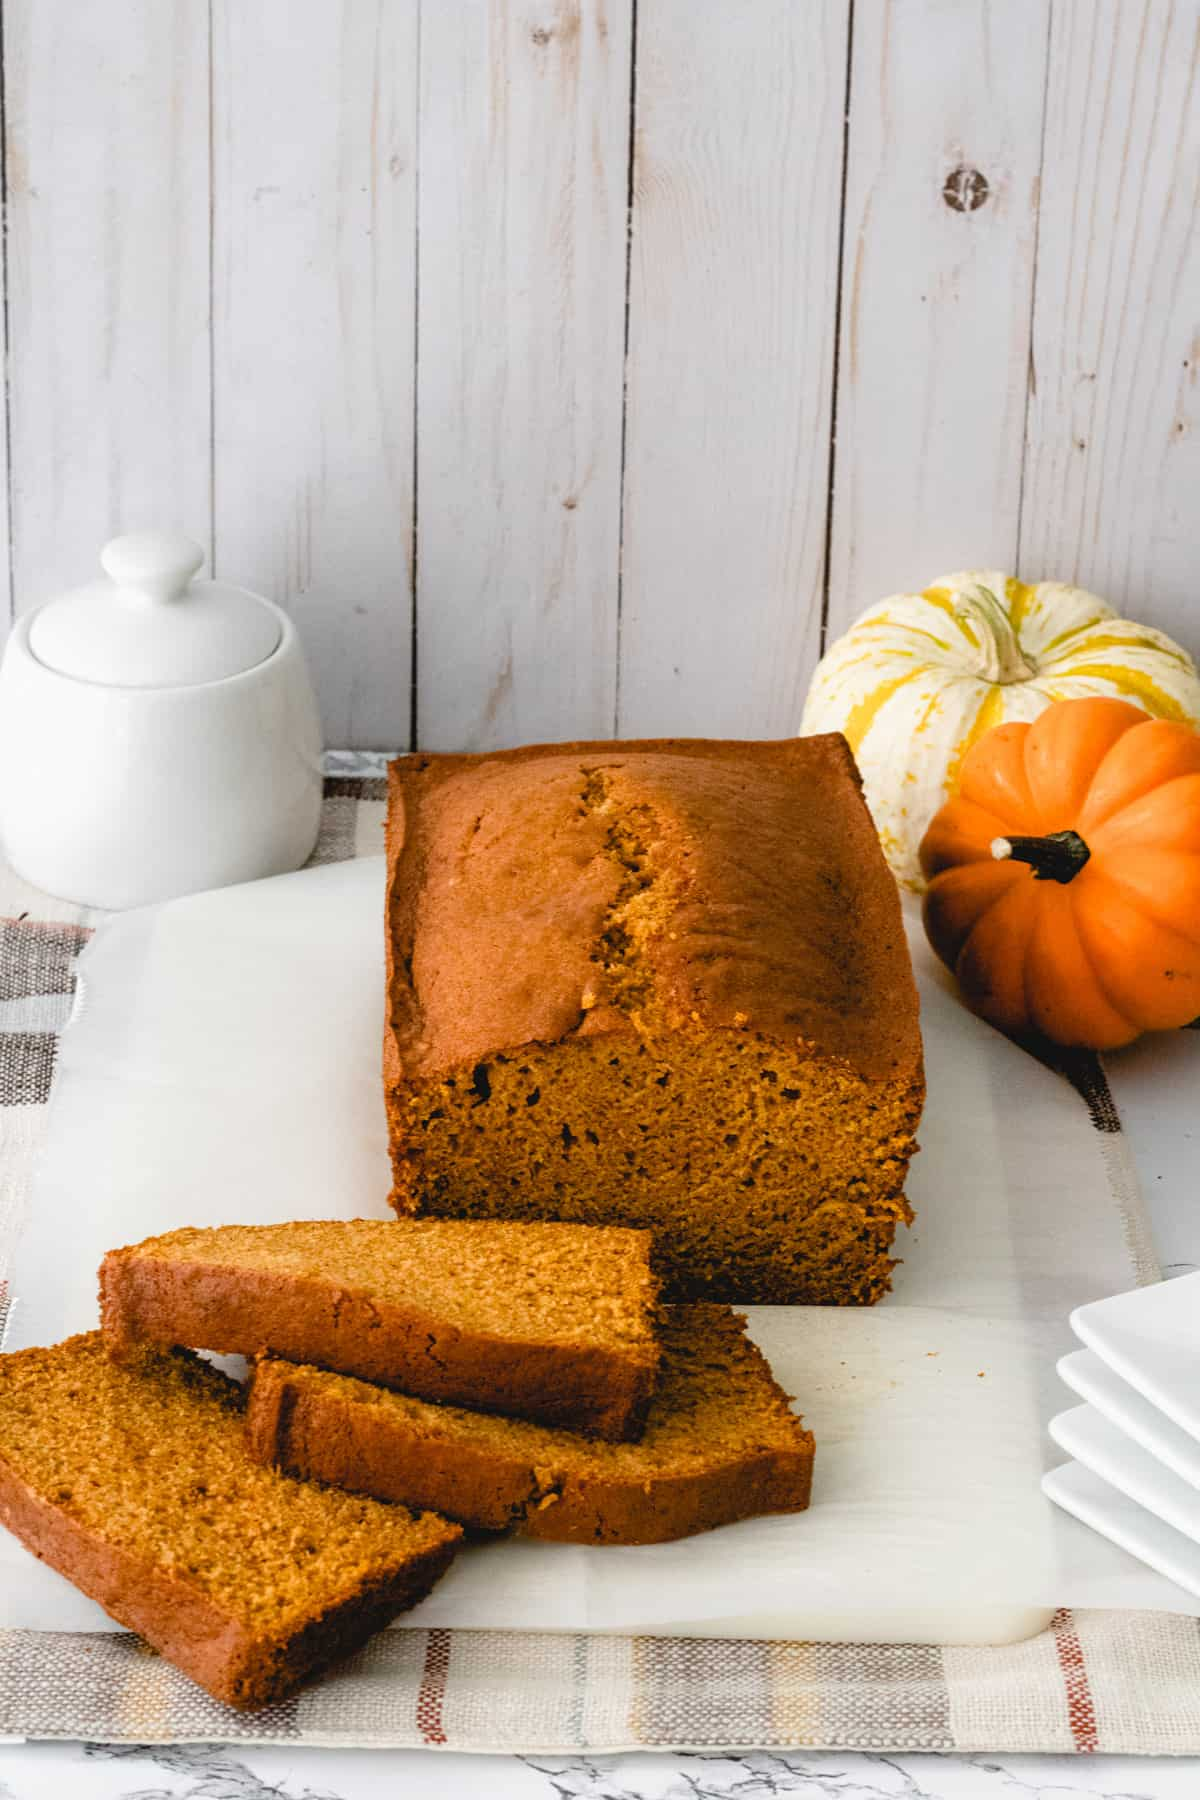 Applesauce pumpkin bread with 3 slices stacked to the left. Pumpkins and sugar jar in back corners.